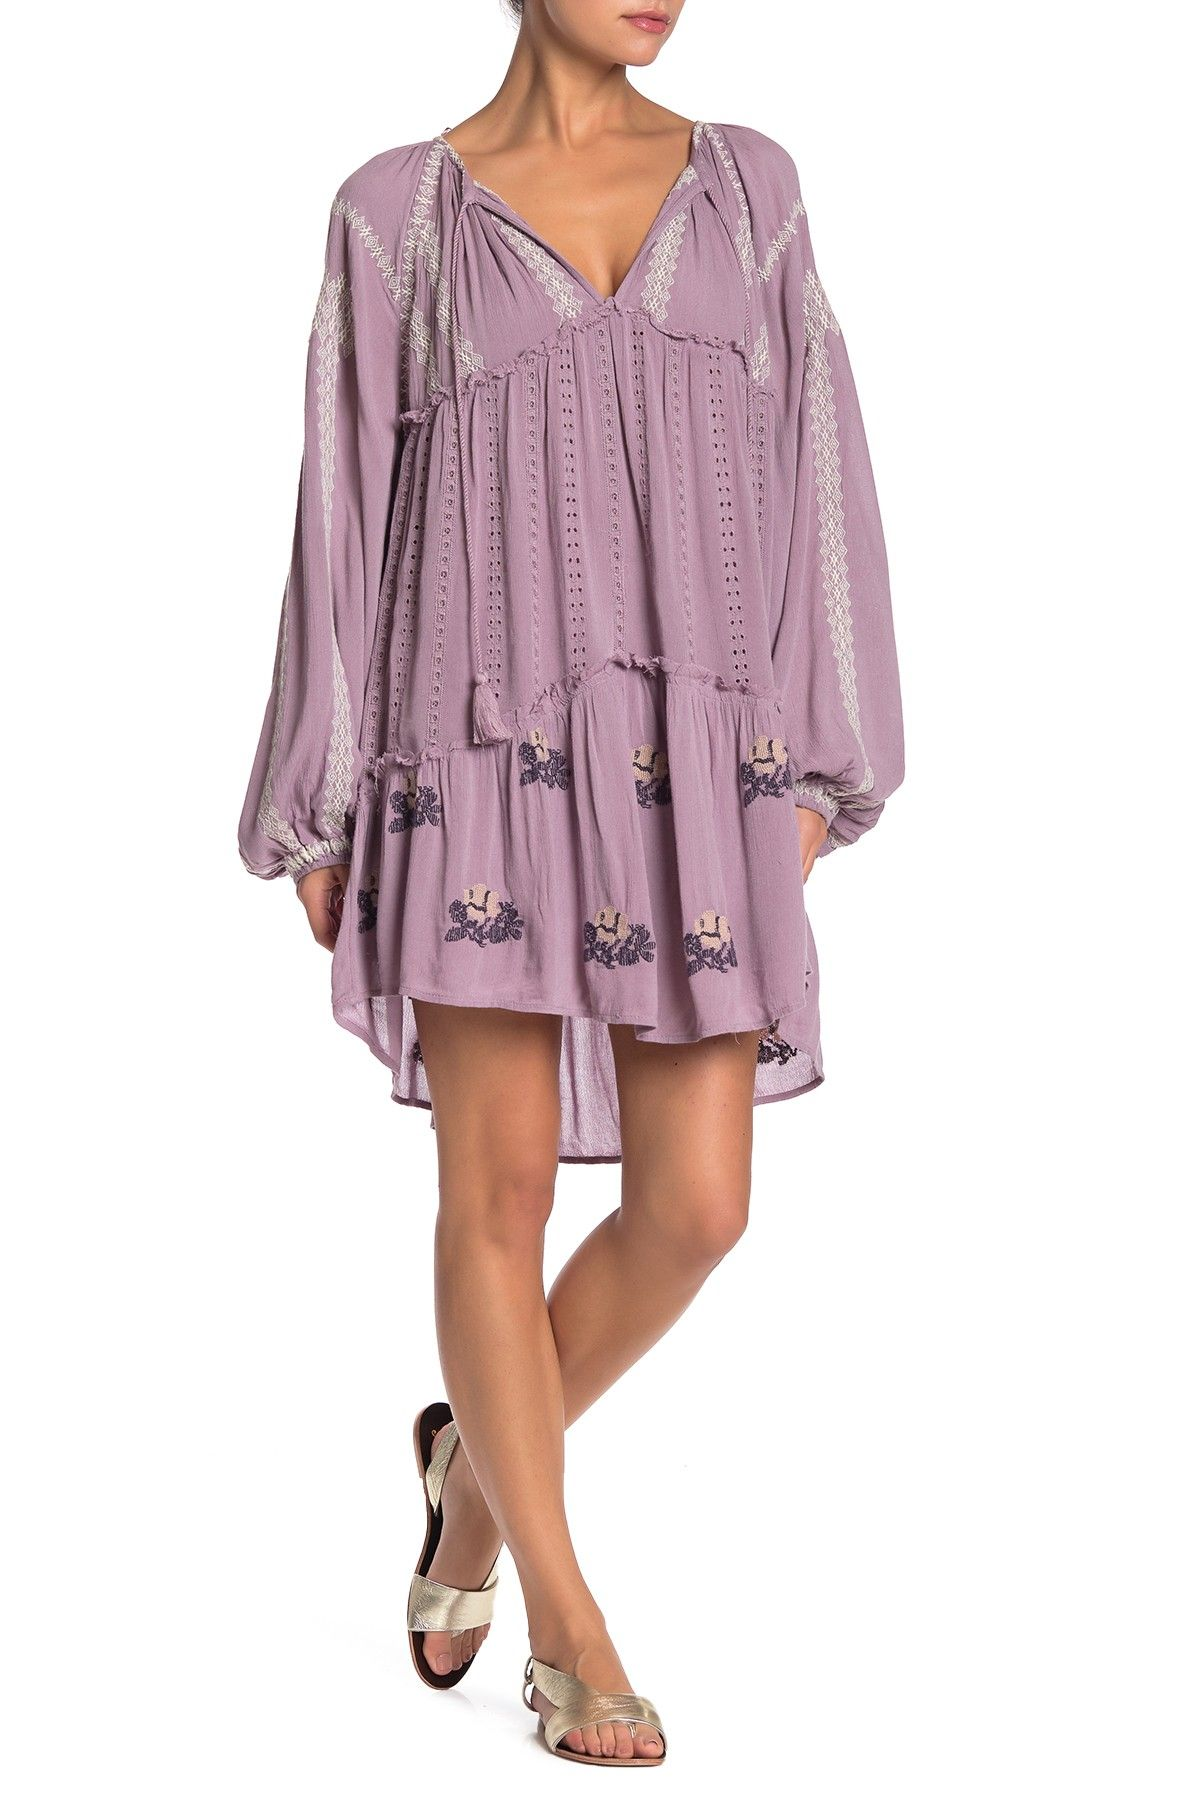 Free People | Wild Horses Embroidered Long Sleeve Mini Dress #nordstromrack